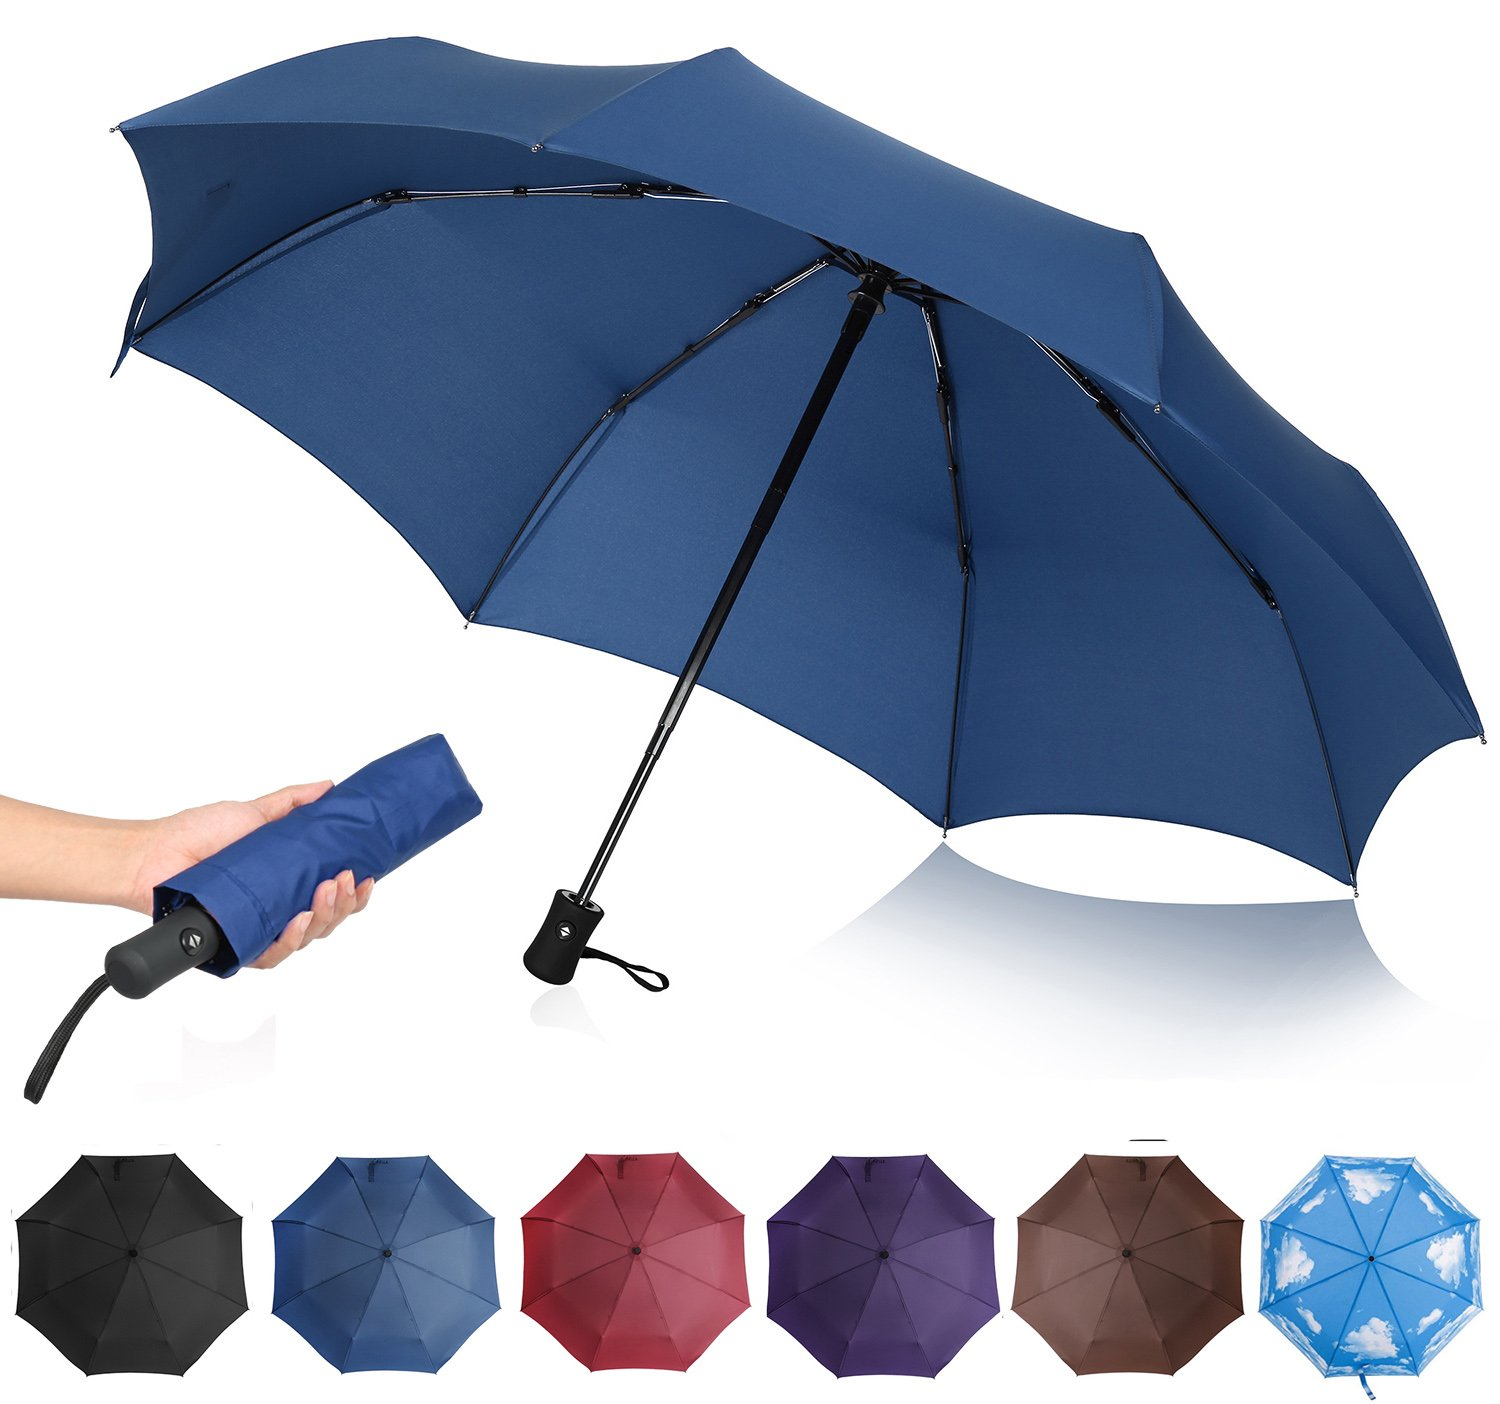 QHUMO Compact Travel Umbrella Windproof, Auto Open Close Umbrellas for Women Men